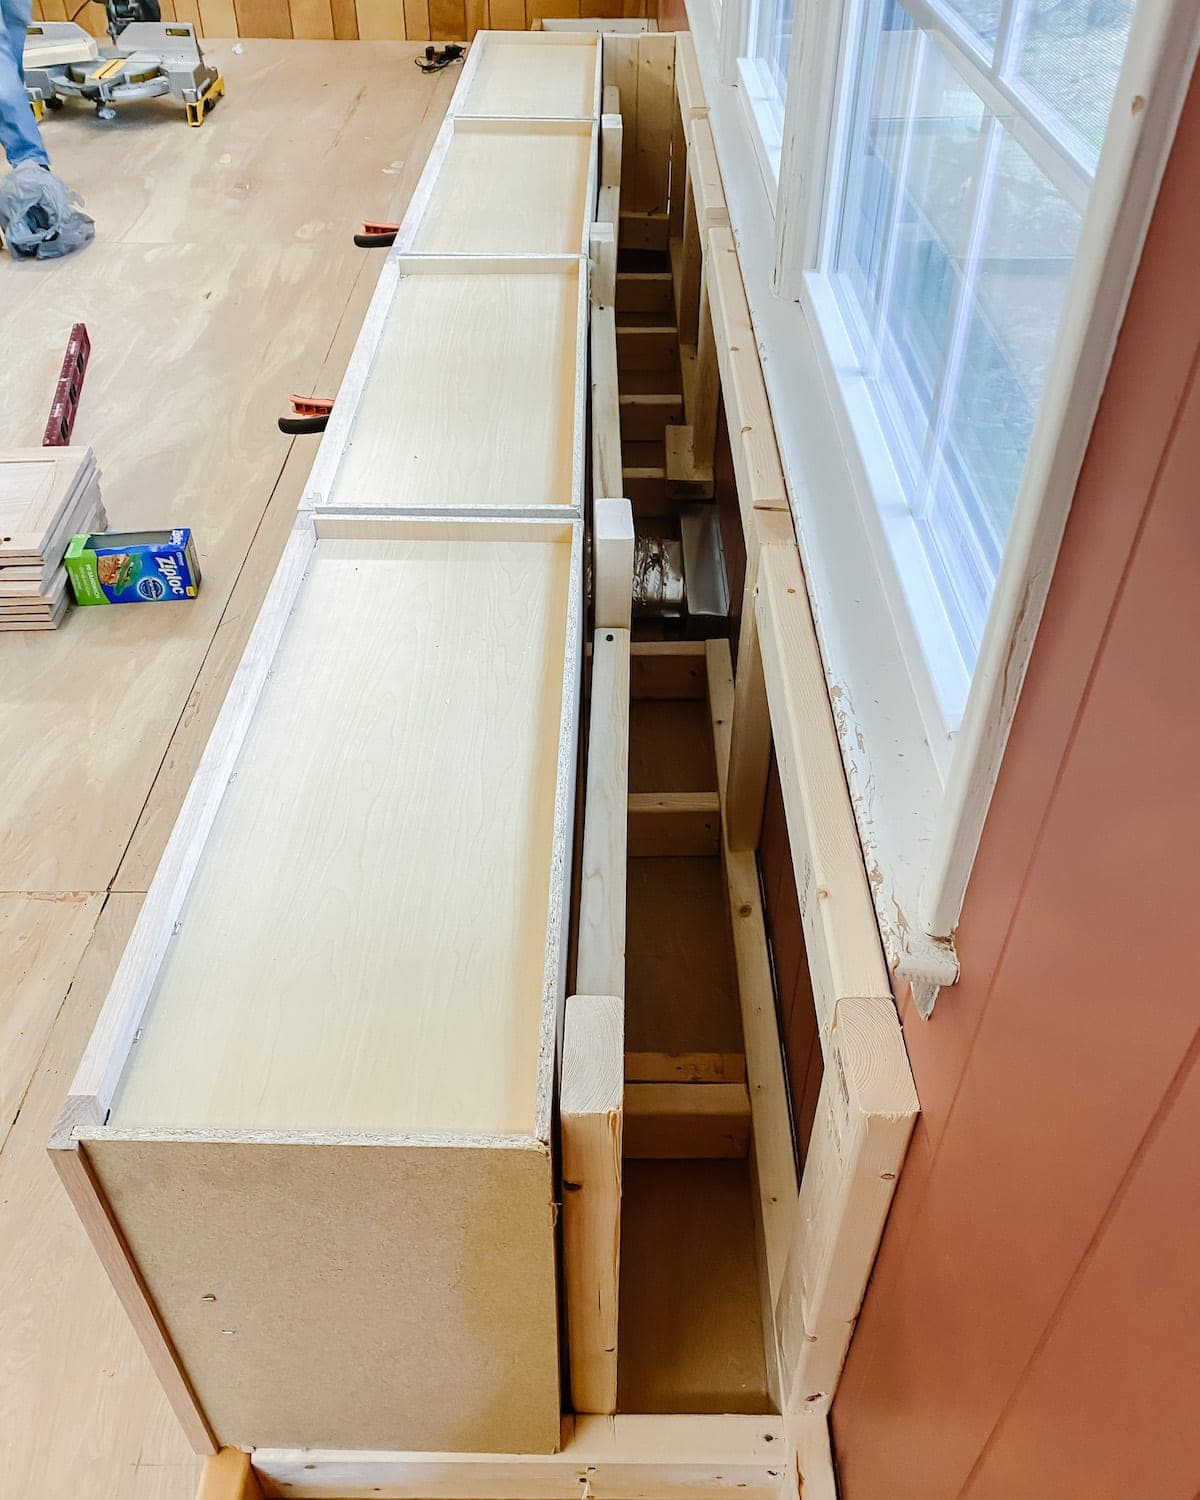 A step-by-step tutorial to build DIY built in cabinets and a window seat using inexpensive stock kitchen cabinets.